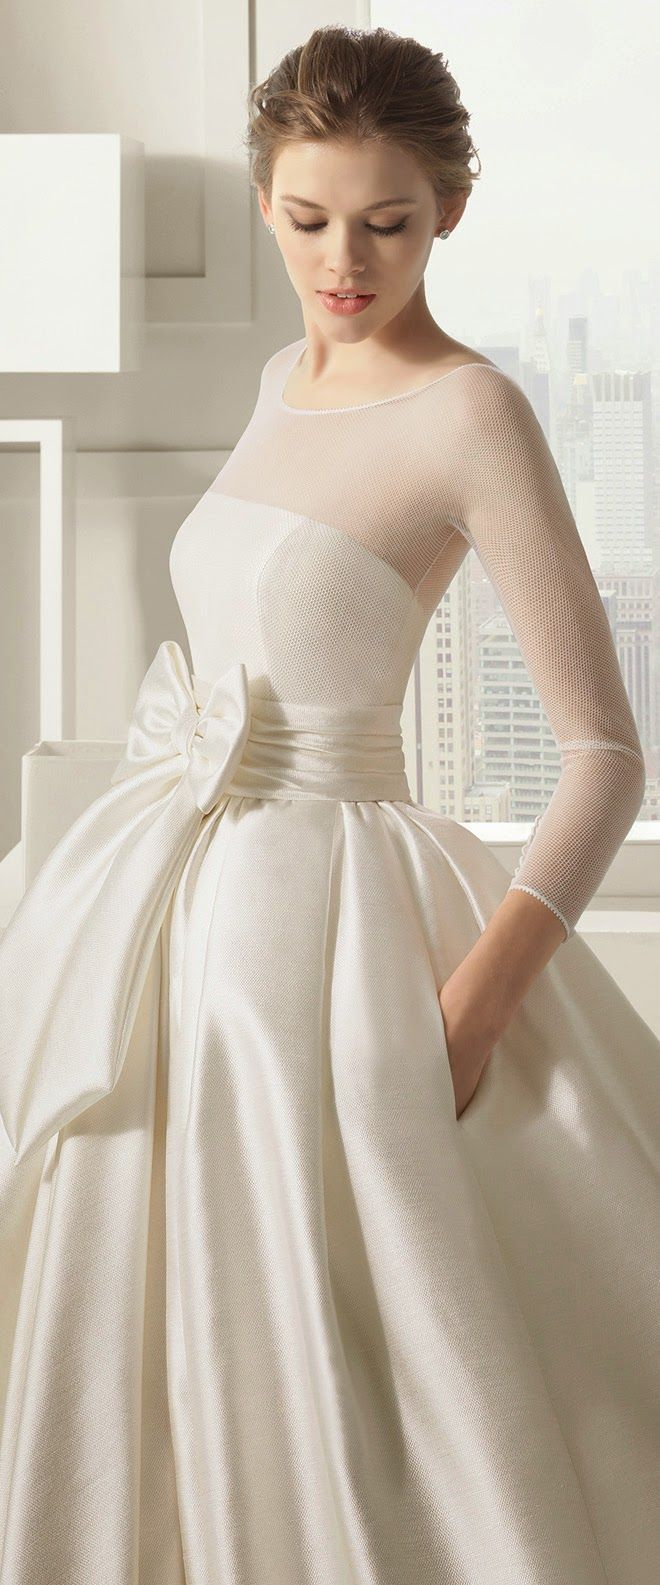 wedding dresses with pockets wedding dress with pockets Rosa Clara Bridal Collection Part 2